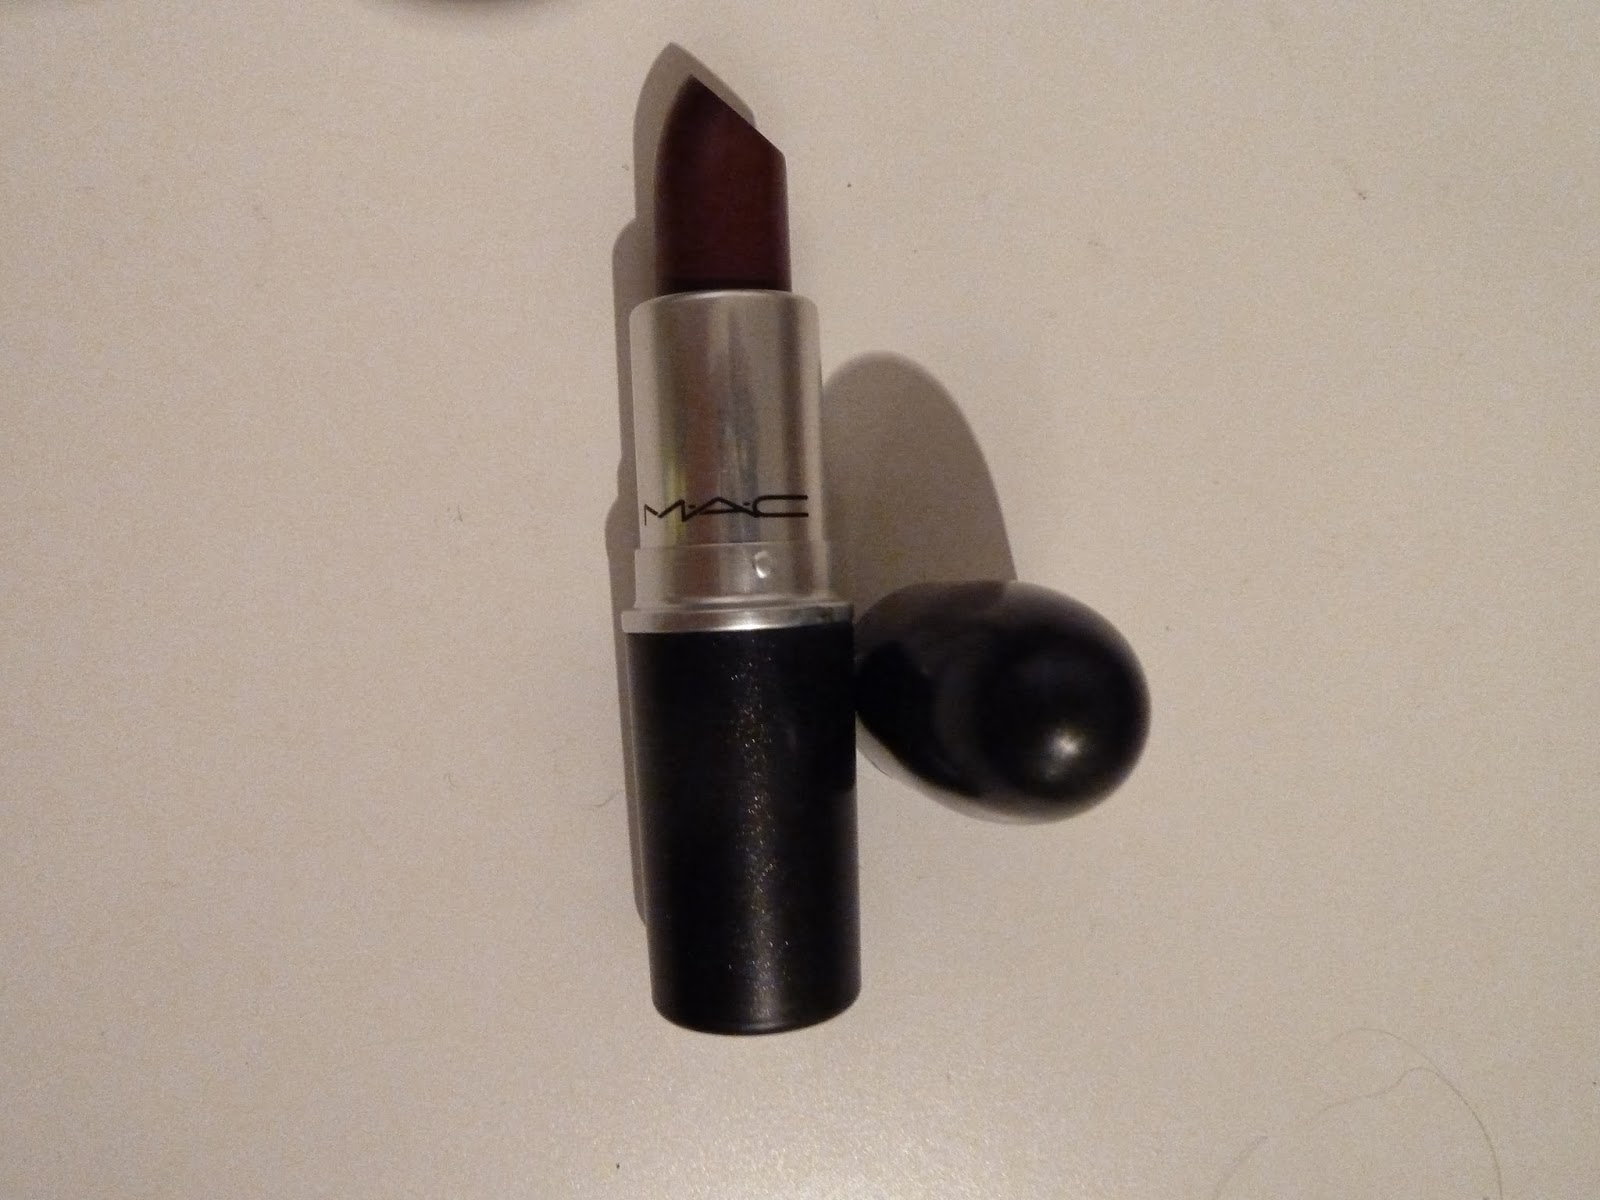 MAC Lipstick in Diva and Lipliner in Nightmoth | FABUGLOSS